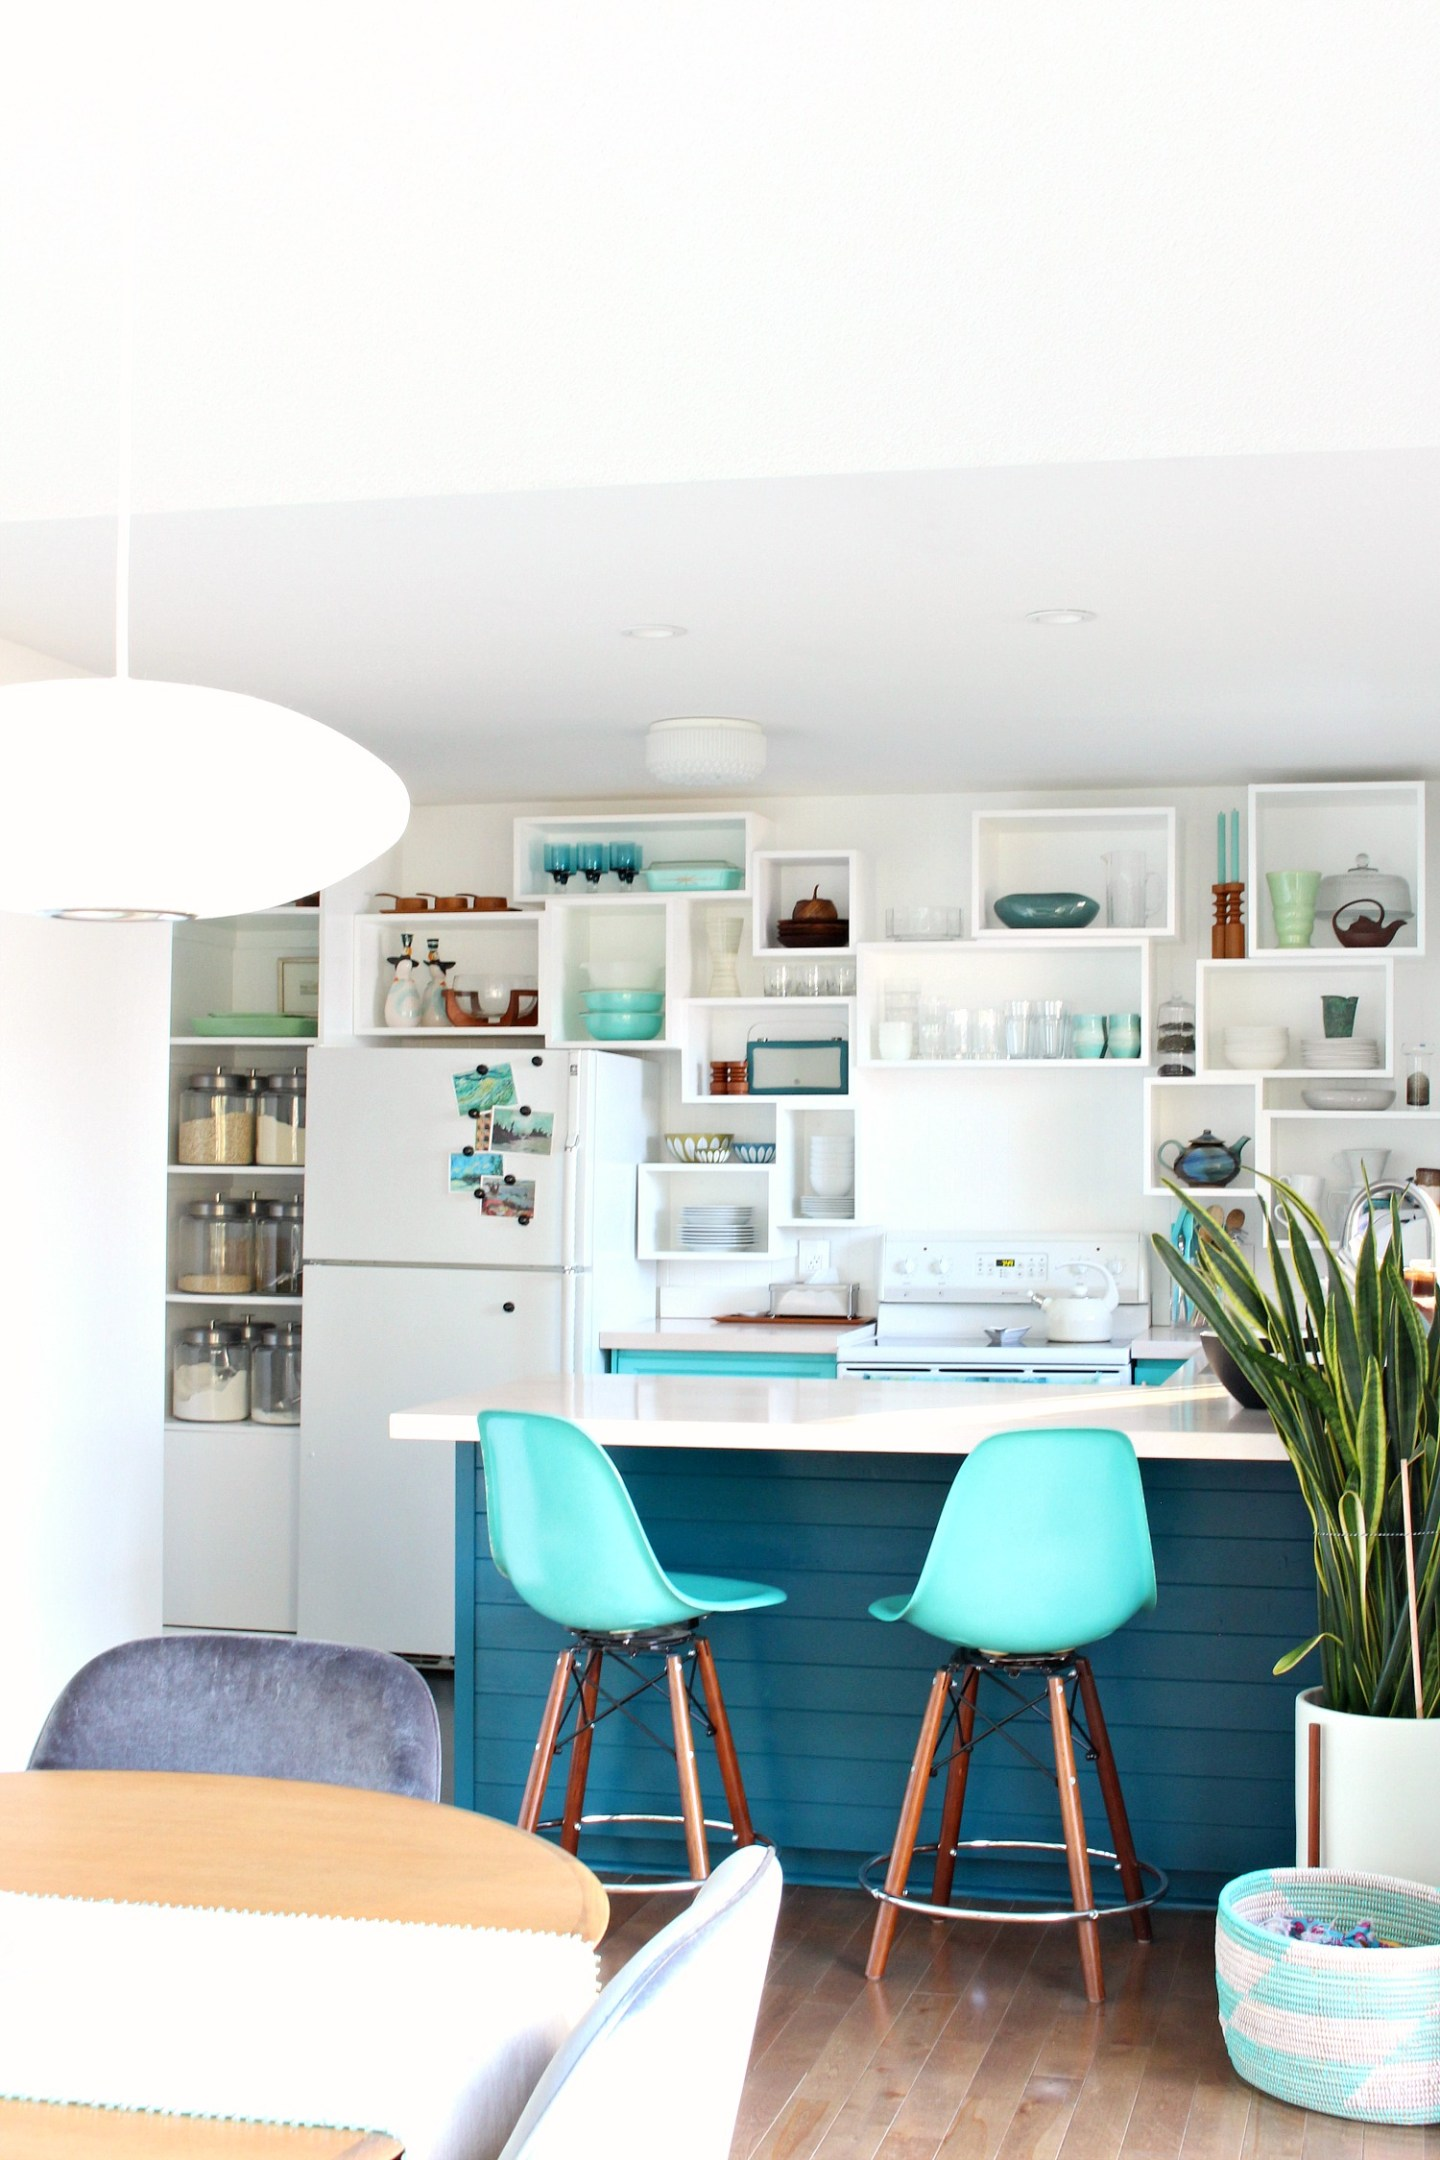 How to Build Wall Cubbies   Fresh Take on Kitchen Open Shelving. Teal Kitchen with Storage Cubbies DIY Instead of Open Shelving. #openshelving #diystorage #diyblog #diyhomedecor #diykitchen